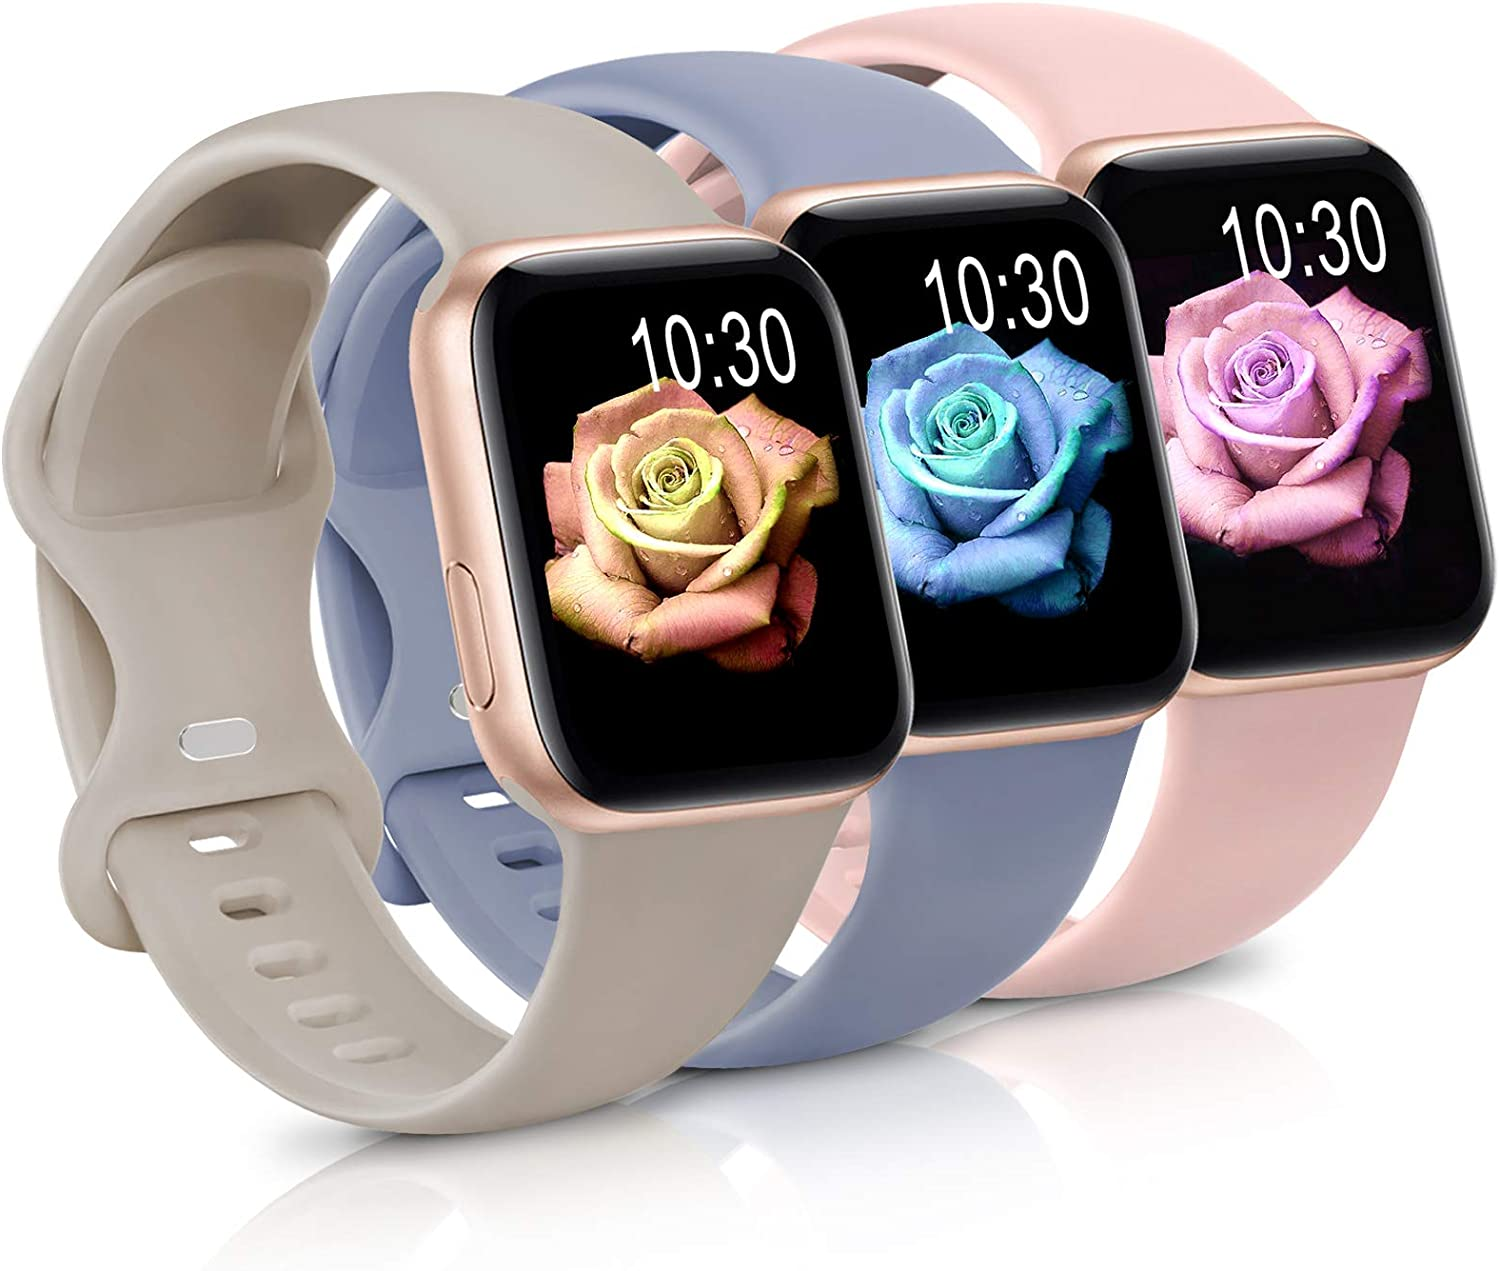 Sport Band Compatible with Apple Watch iWatch Bands 38mm 40mm 42mm 44mm,Soft Silicone Strap Wristbands for Apple Watch Series 3 6 5 4 2 1 SE Women Men Pack 3,Baby Pink/Stone/Cool Gray,38/40mm,M/L